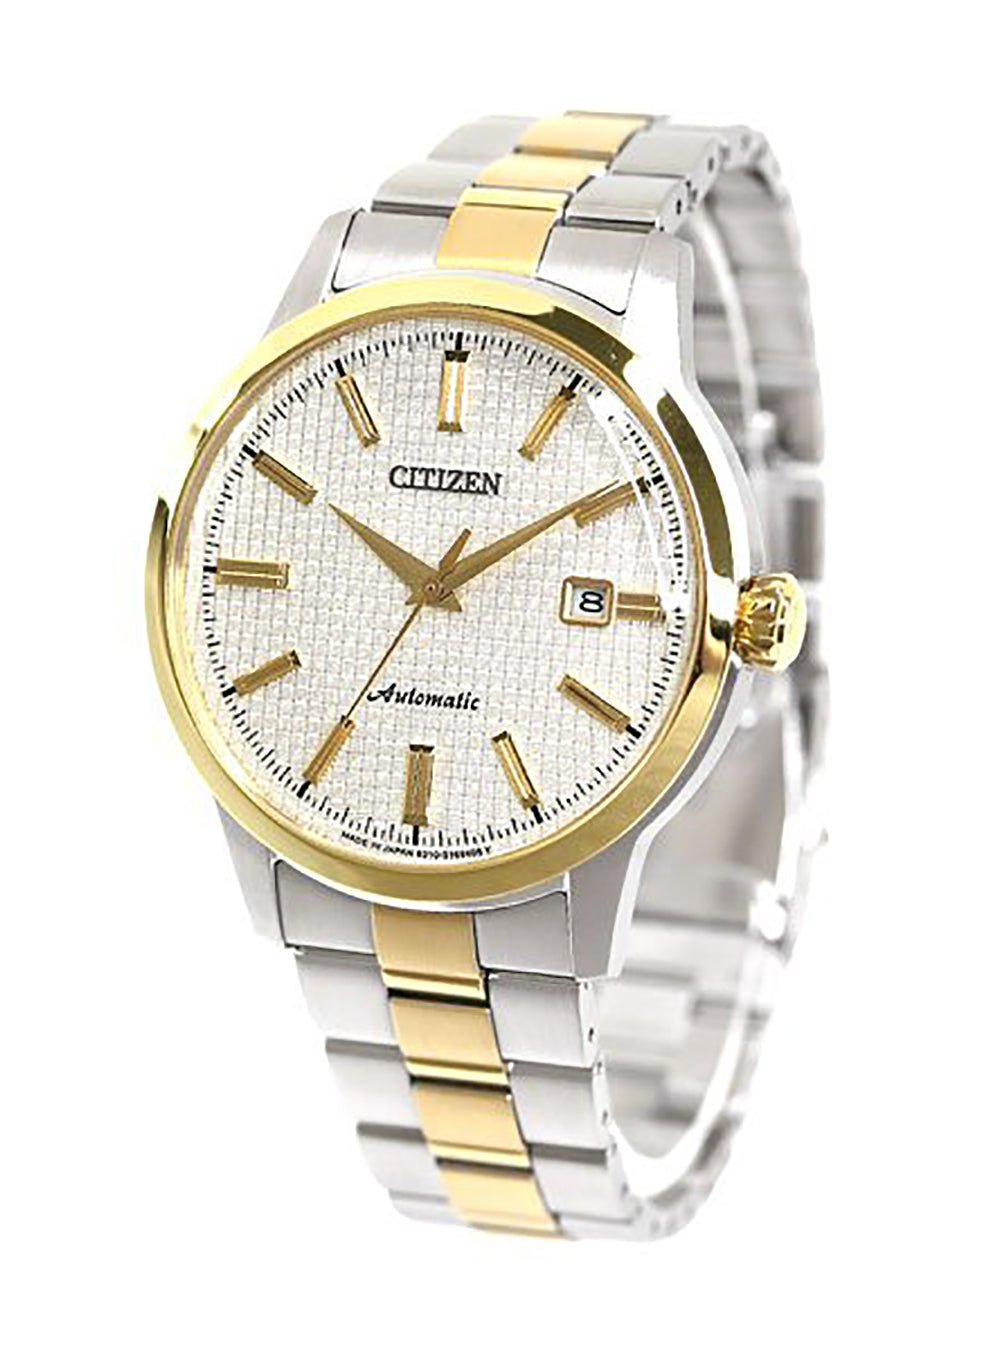 CITIZEN COLLECTION NK0004-94P MADE IN JAPAN JDM